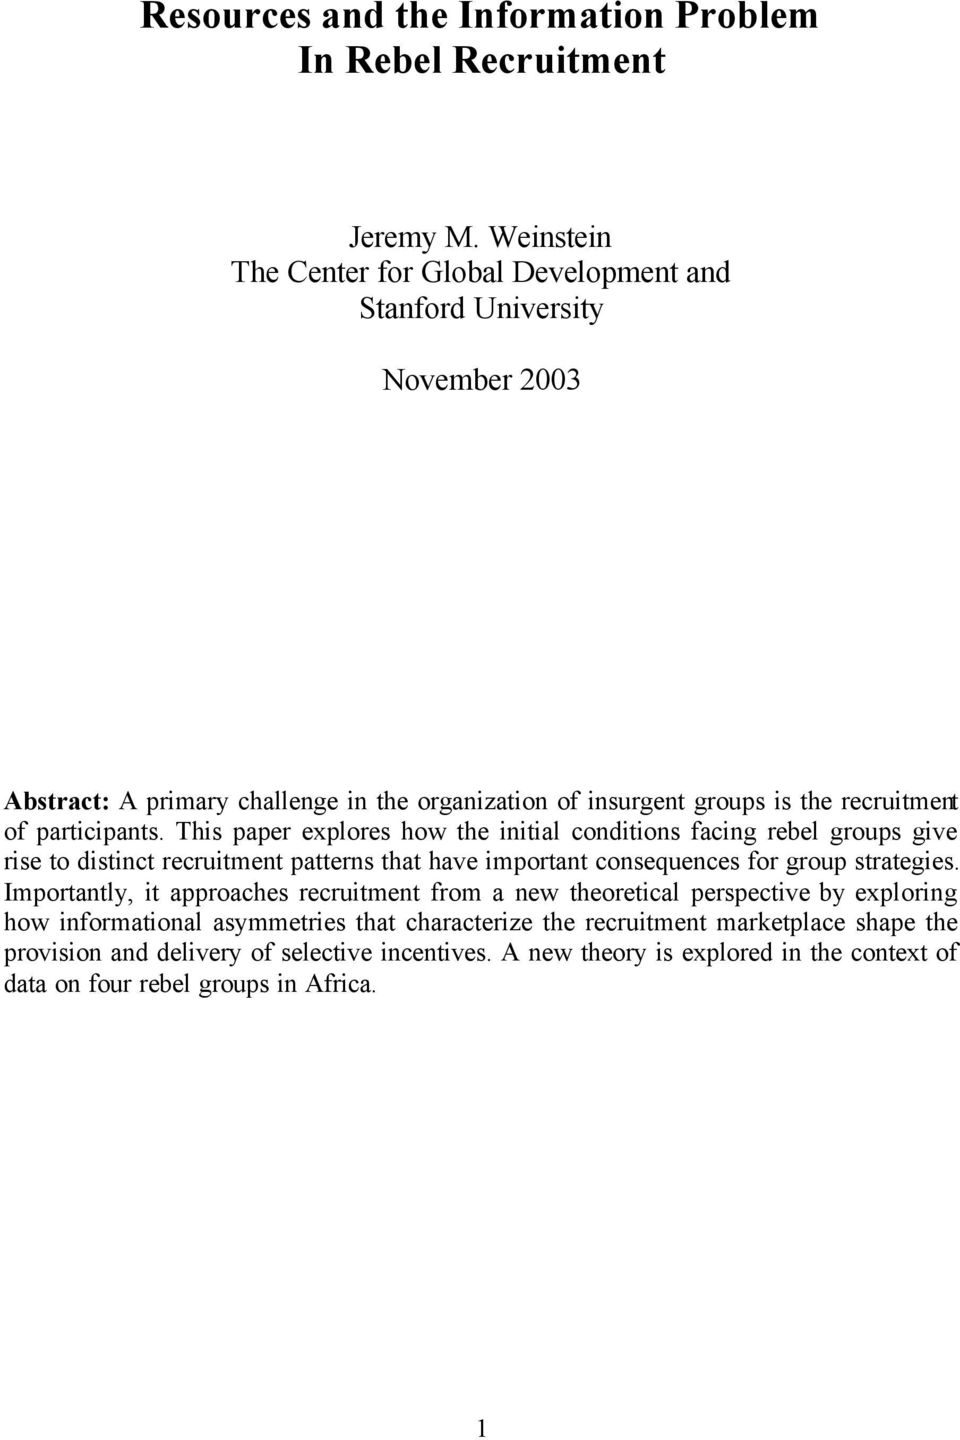 participants. This paper explores how the initial conditions facing rebel groups give rise to distinct recruitment patterns that have important consequences for group strategies.